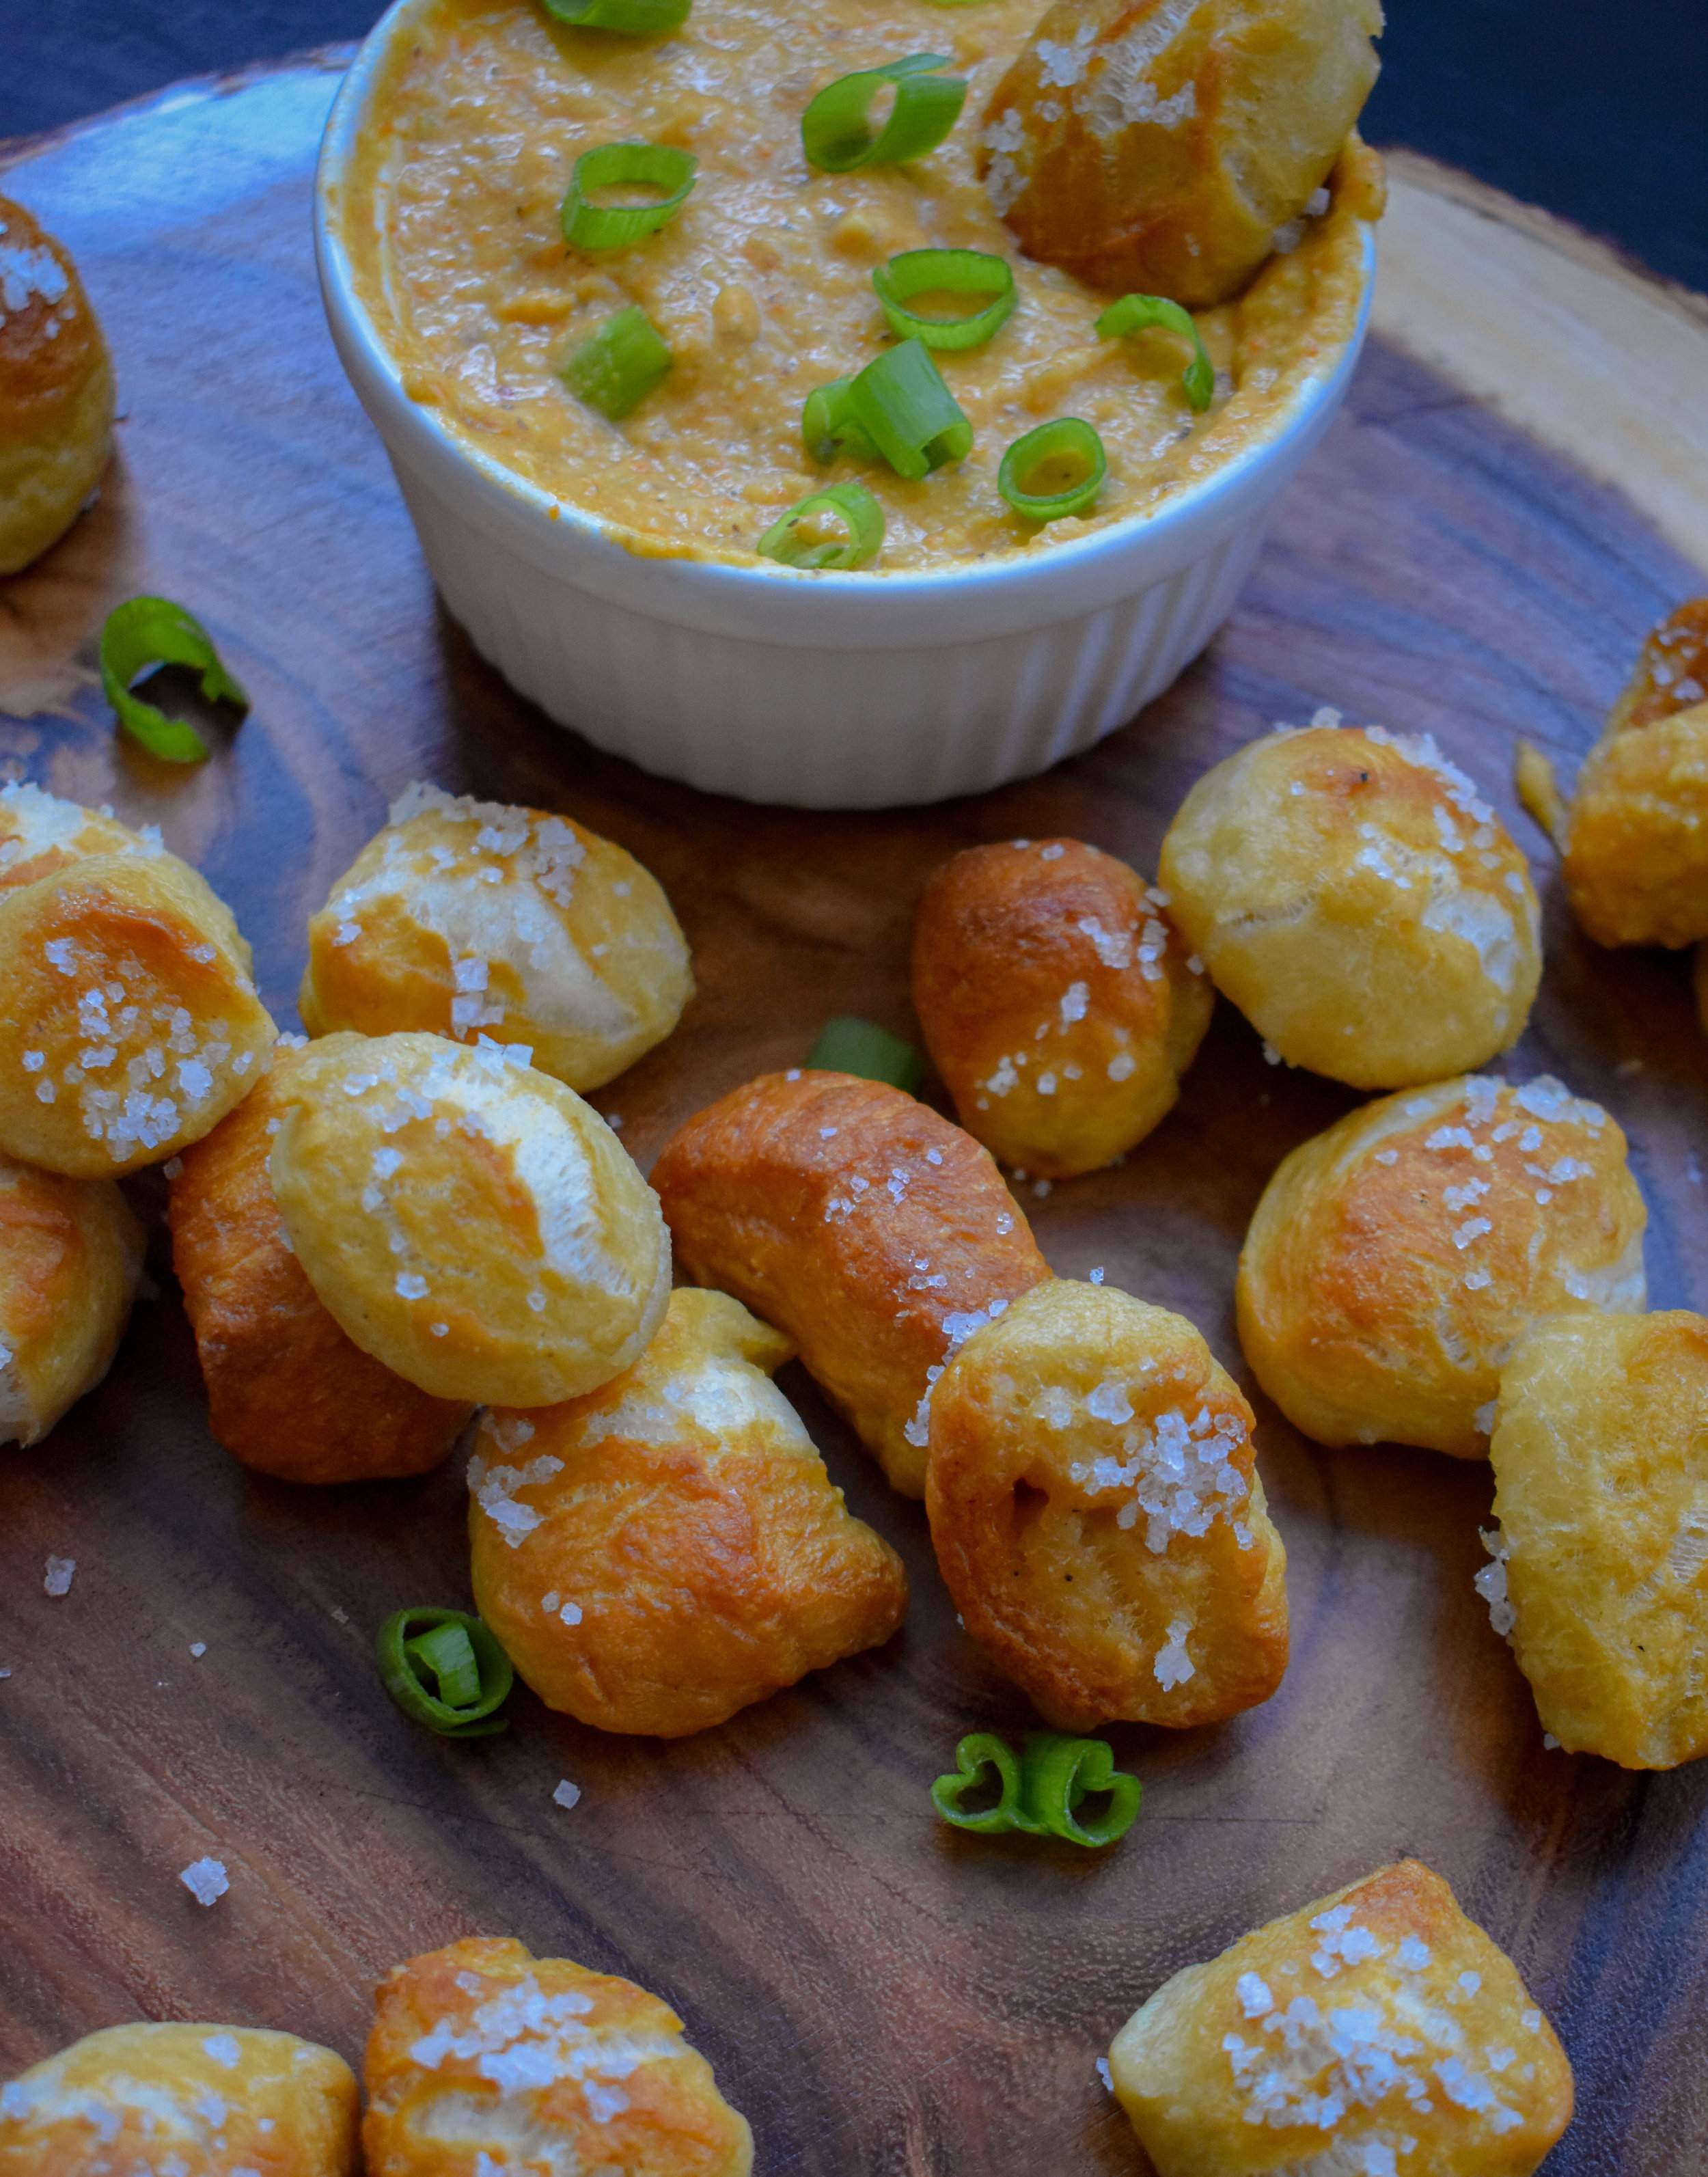 10. Warm your beer cheese while the pretzels bake. Serve with cheese and salivate!